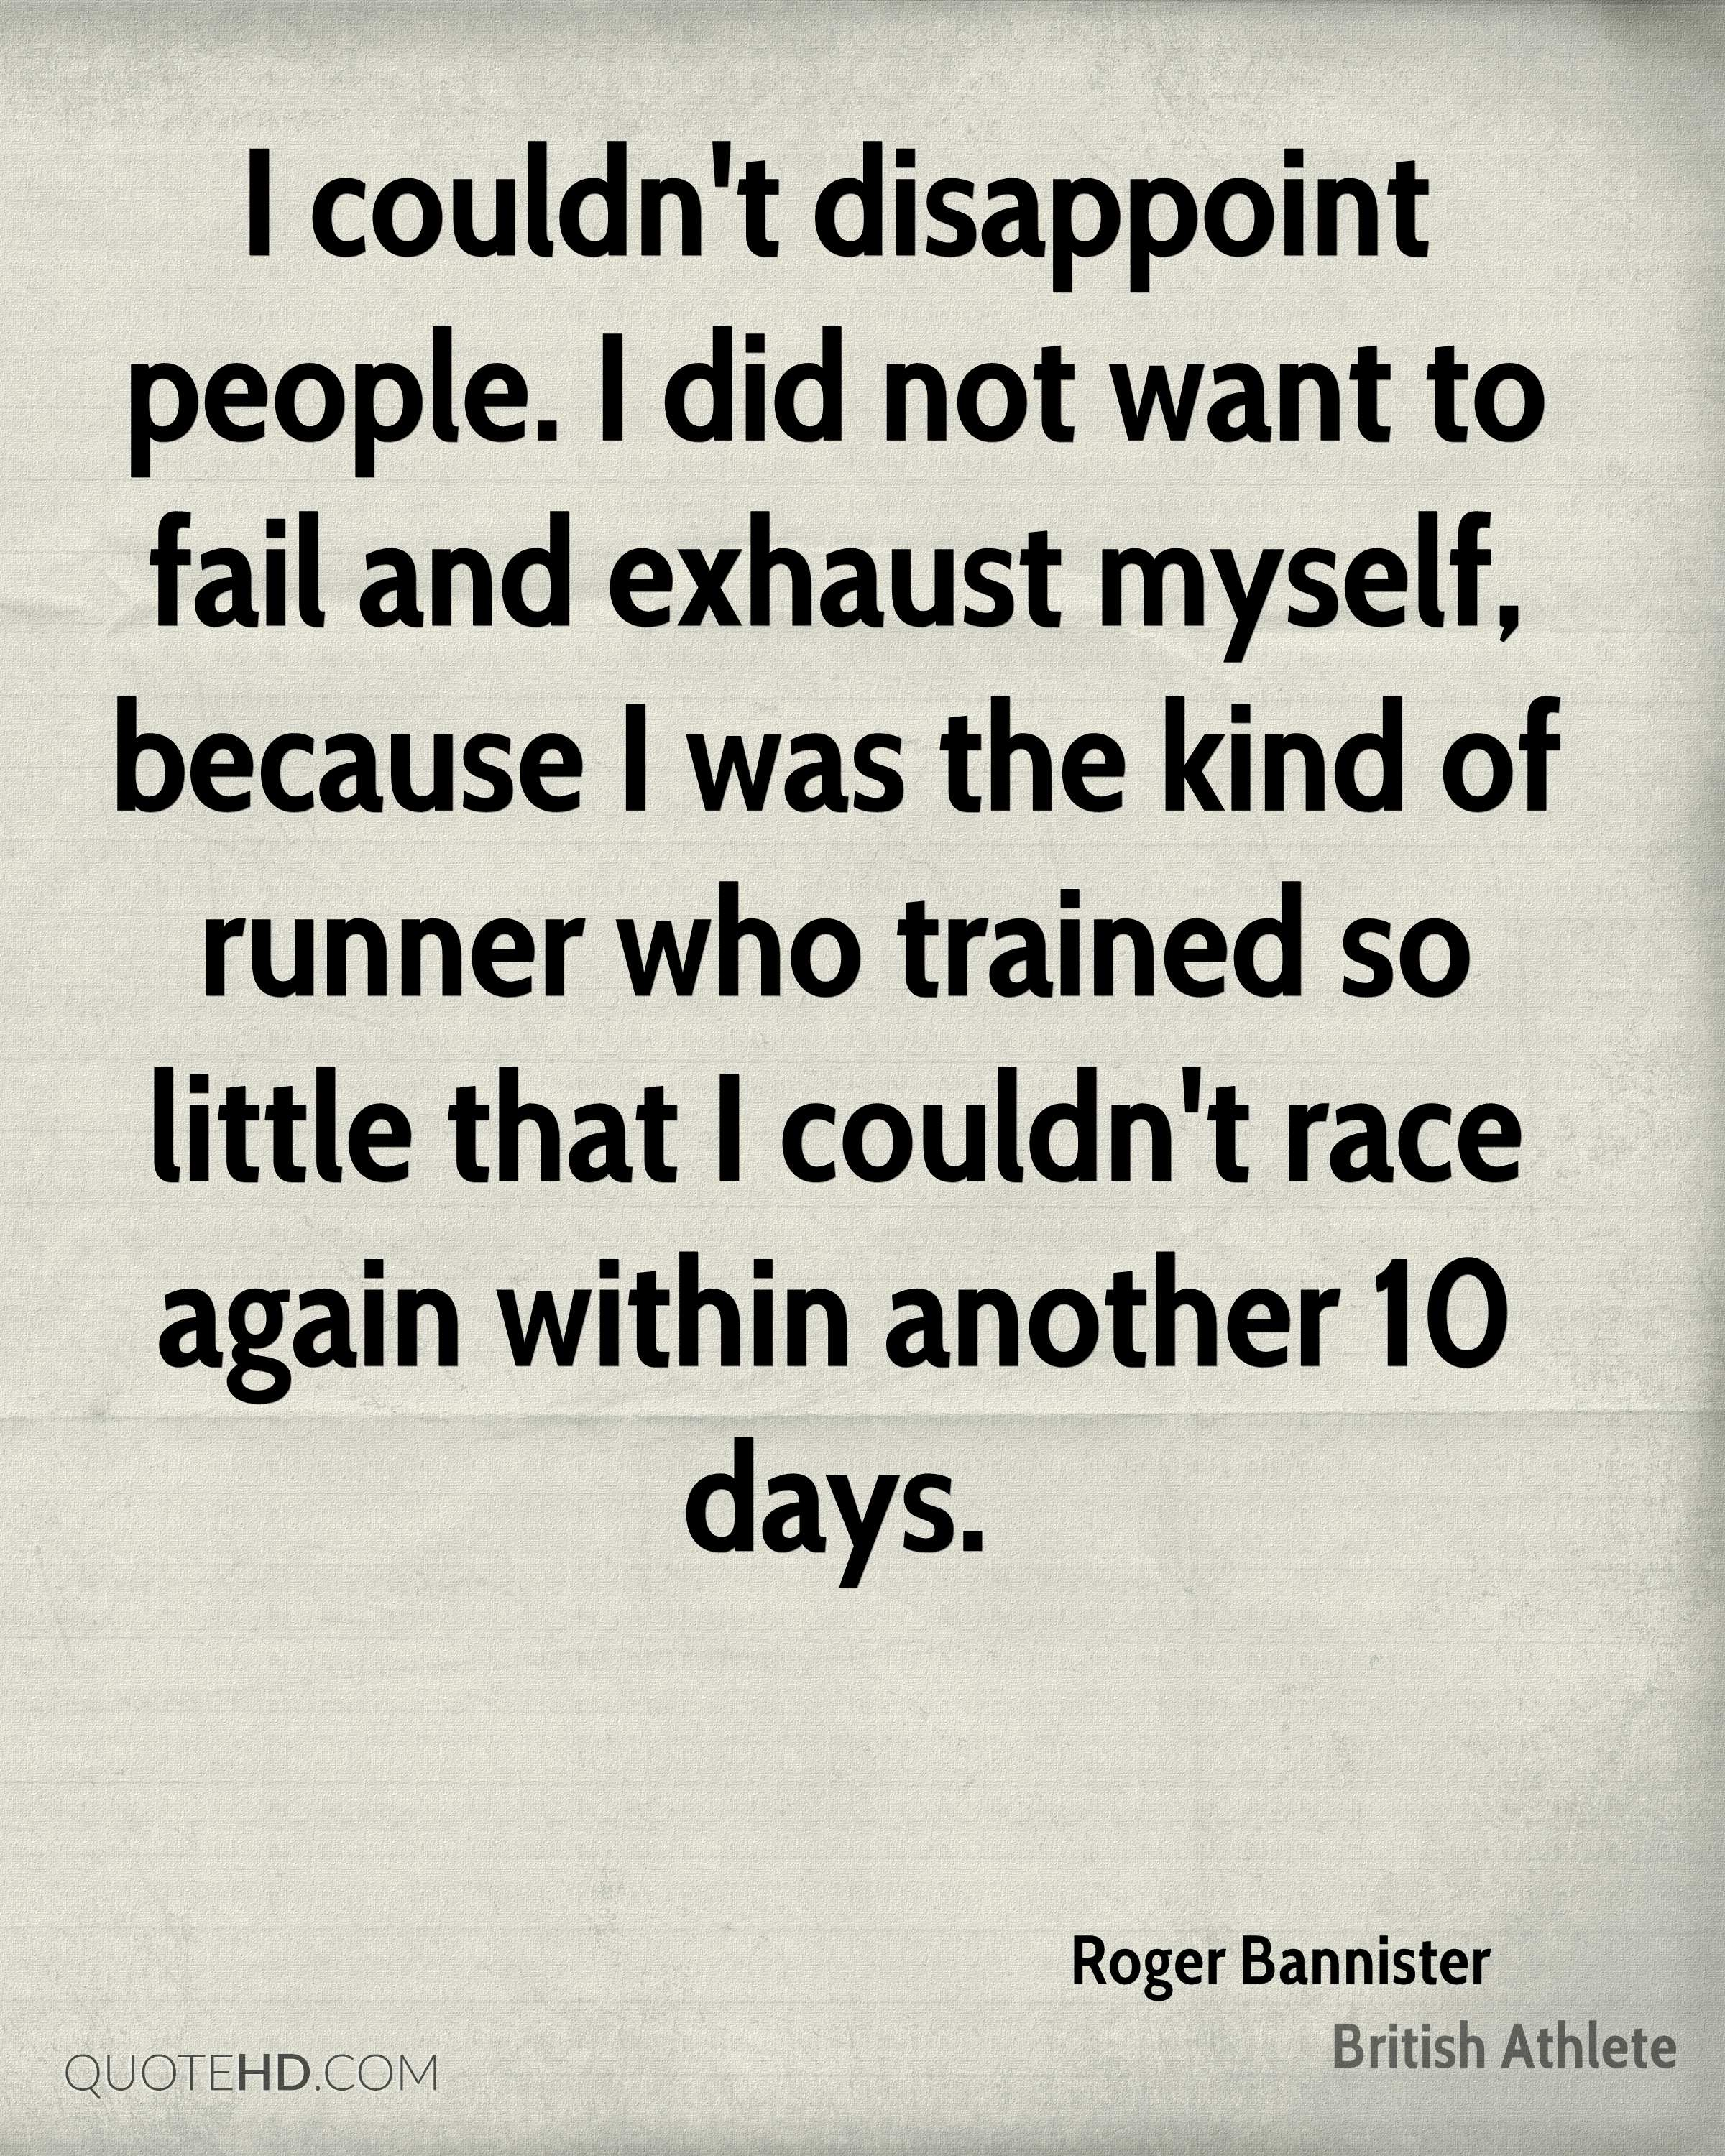 I couldn't disappoint people. I did not want to fail and exhaust myself, because I was the kind of runner who trained so little that I couldn't race again within another 10 days.